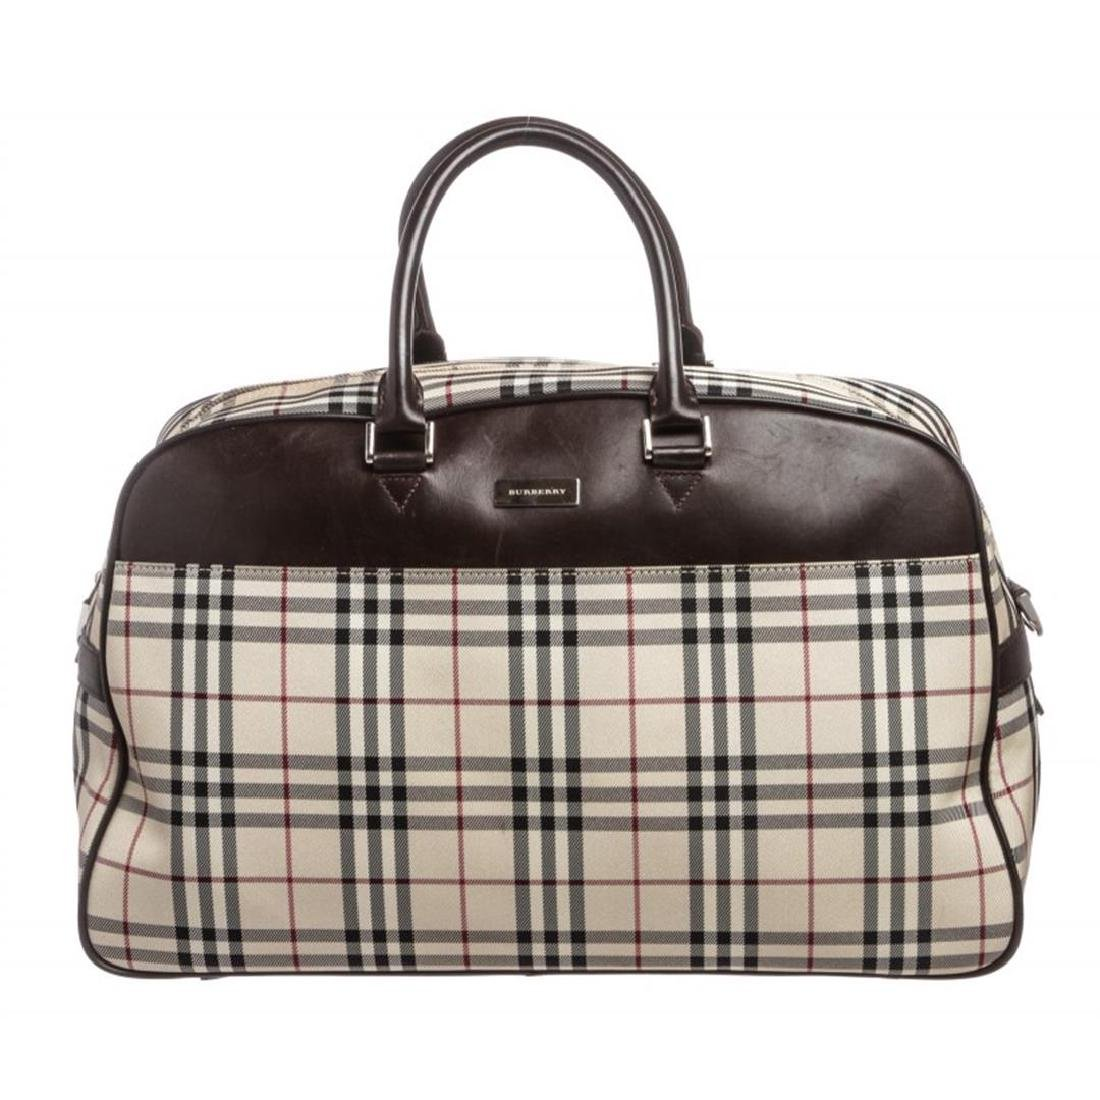 Burberry Nova Check Fabric Brown Leather Travel Duffle